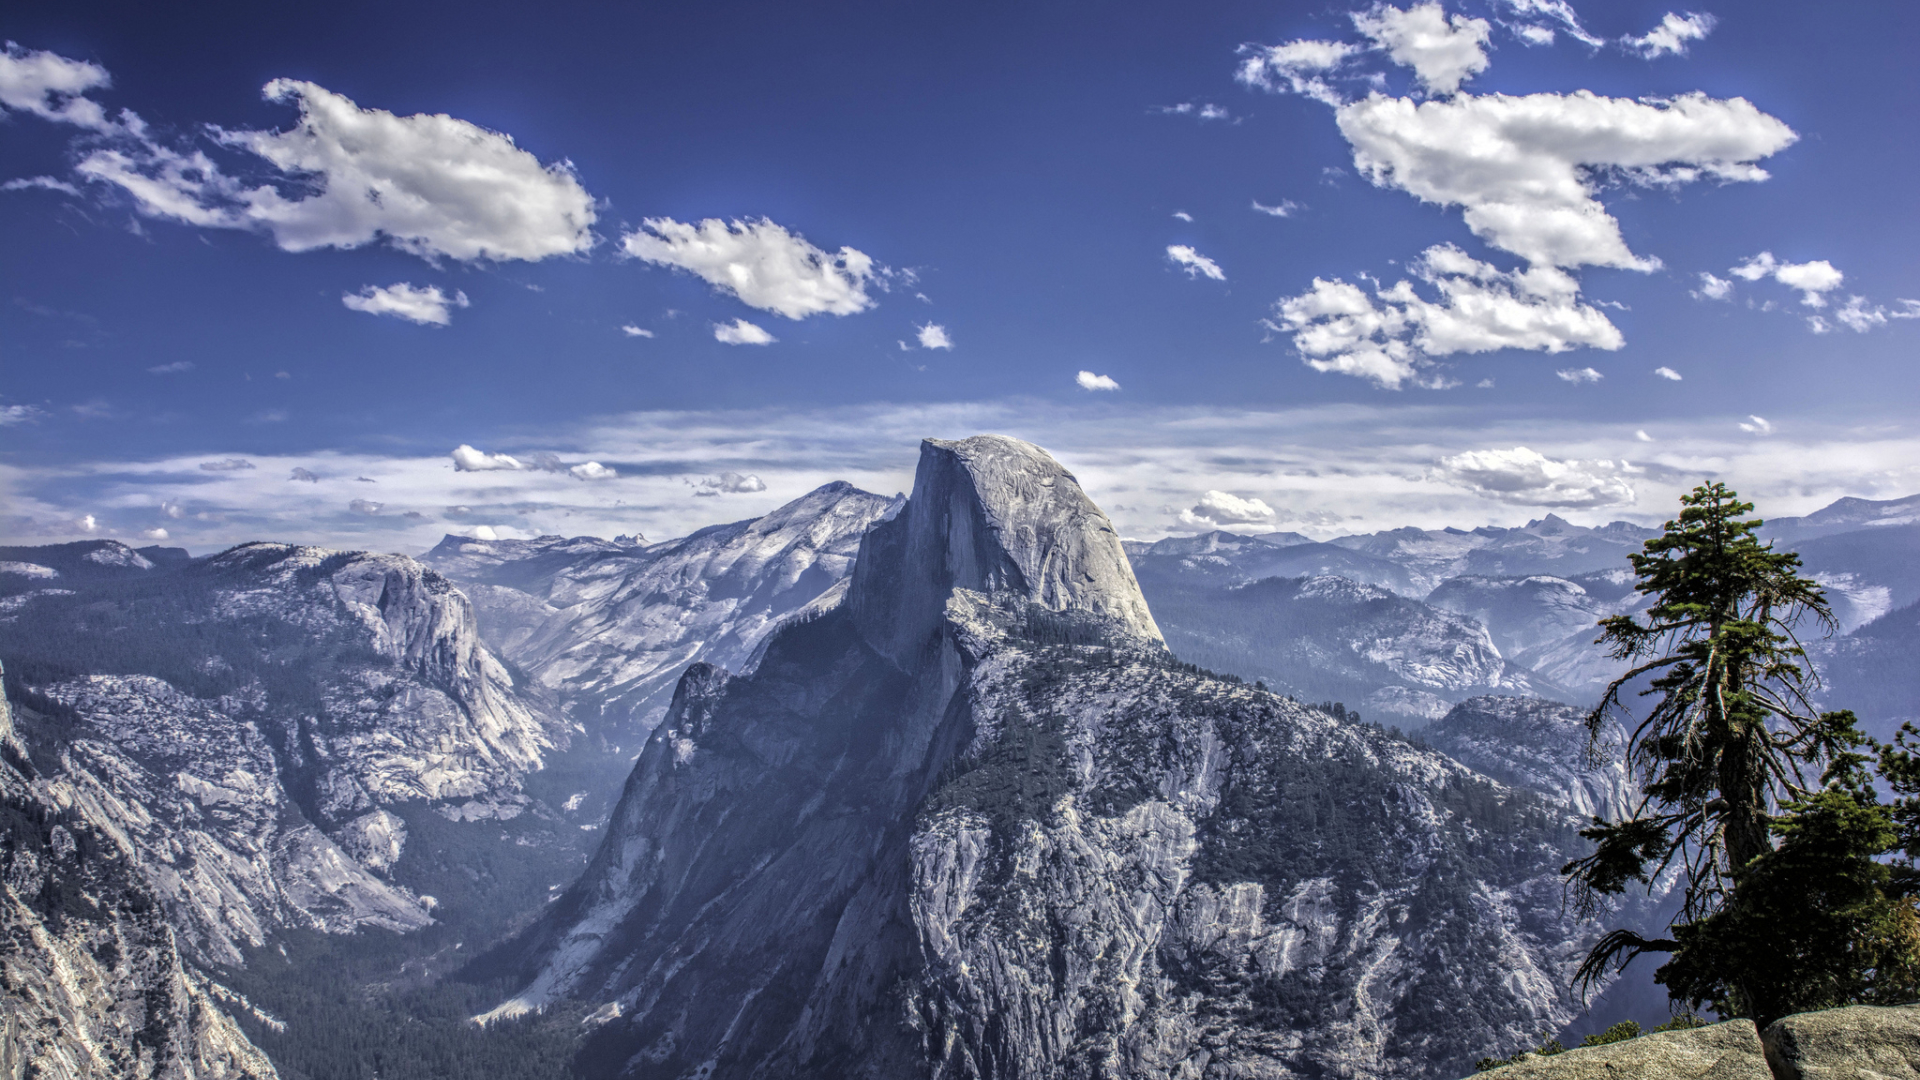 1920x1080 Yosemite California Usa 1080p Laptop Full Hd Wallpaper Hd Nature 4k Wallpapers Images Photos And Background